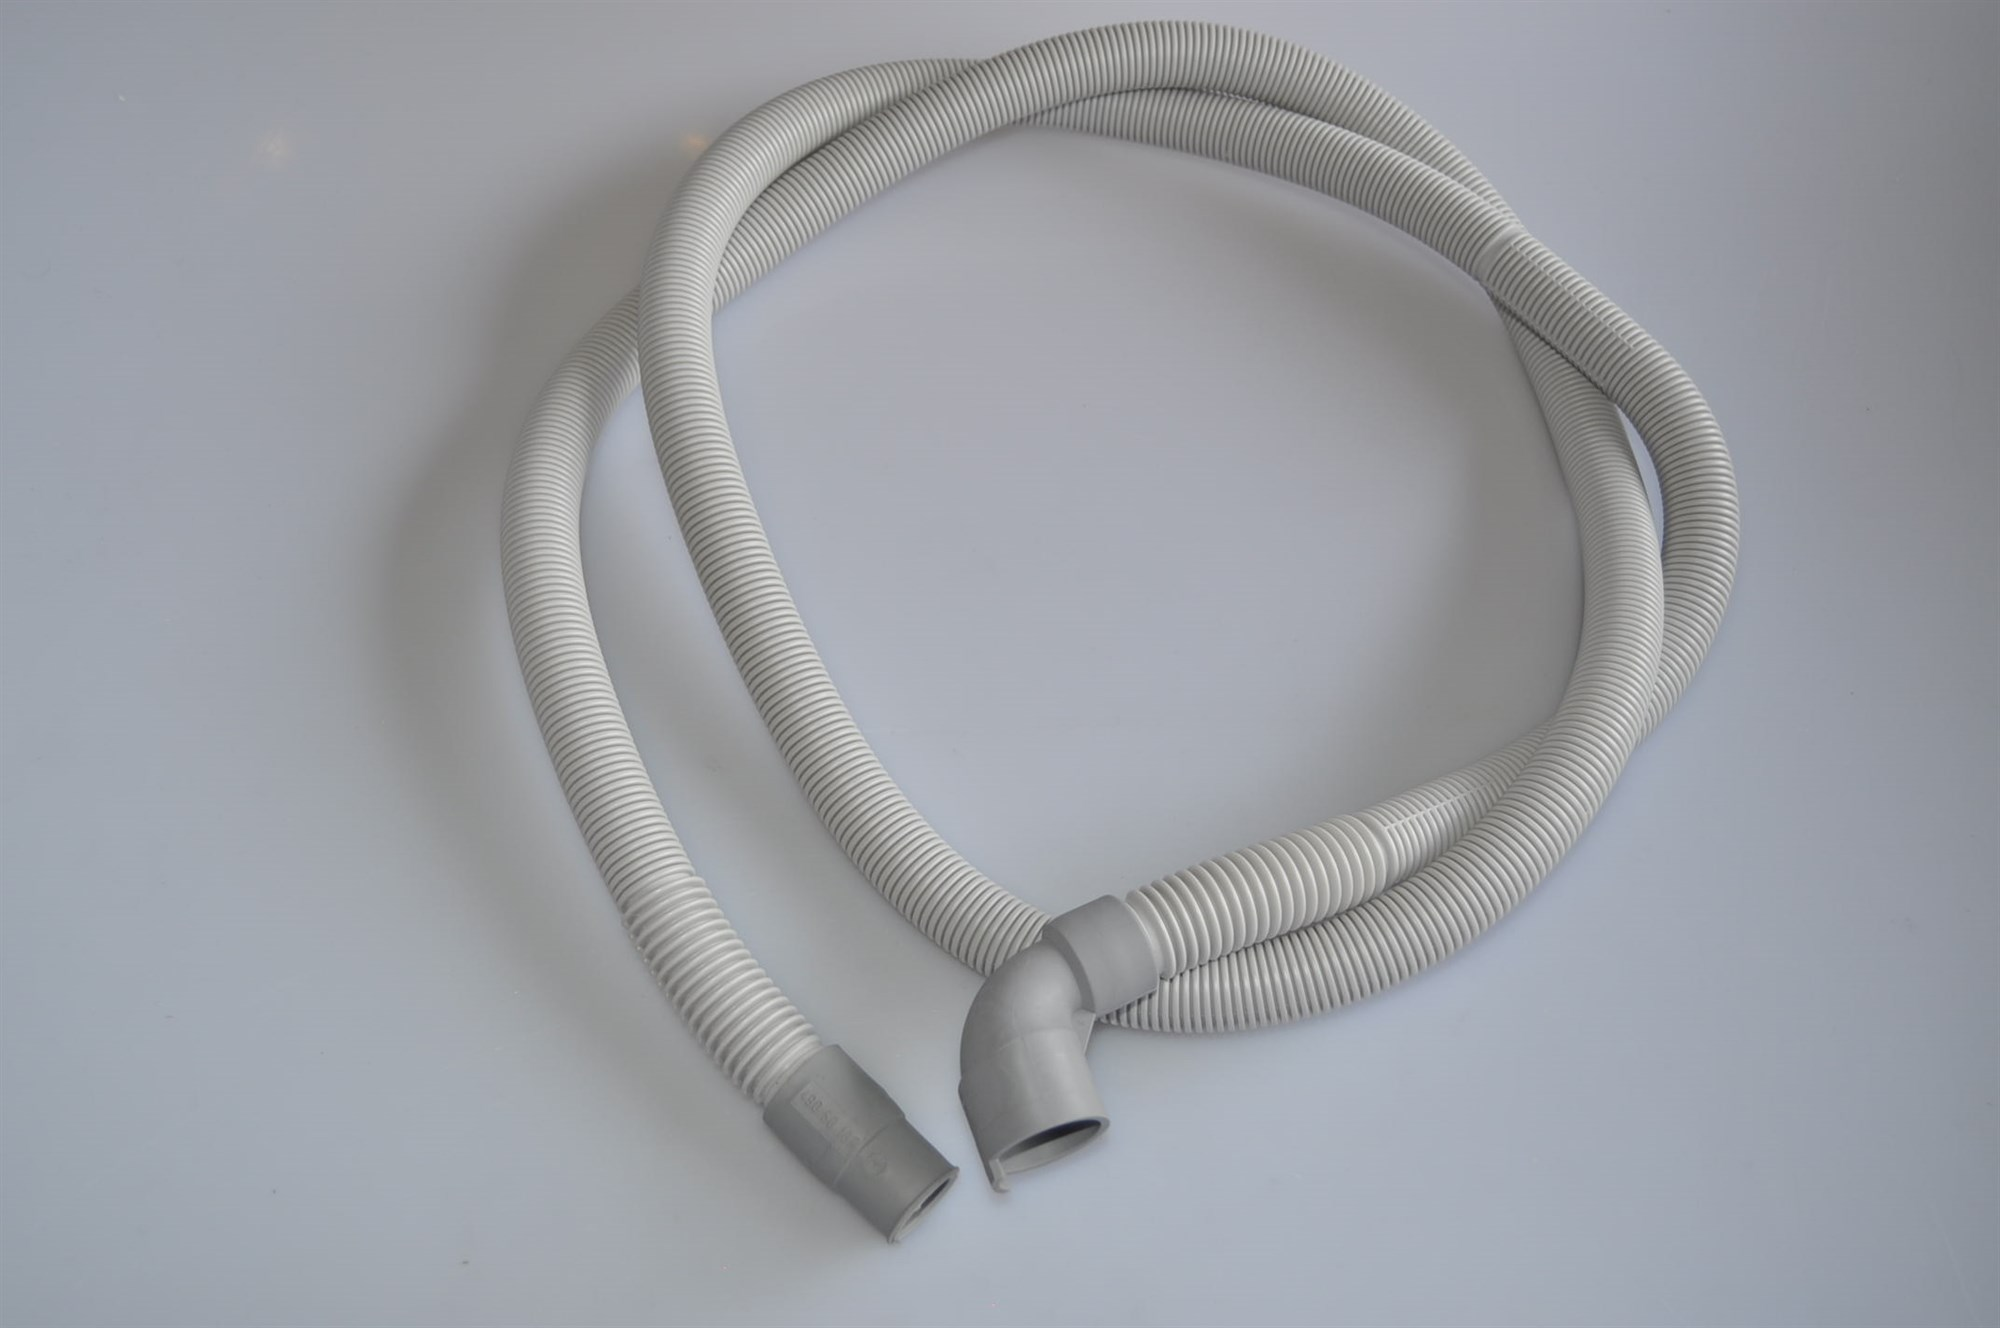 Drain Hose Aeg Dishwasher